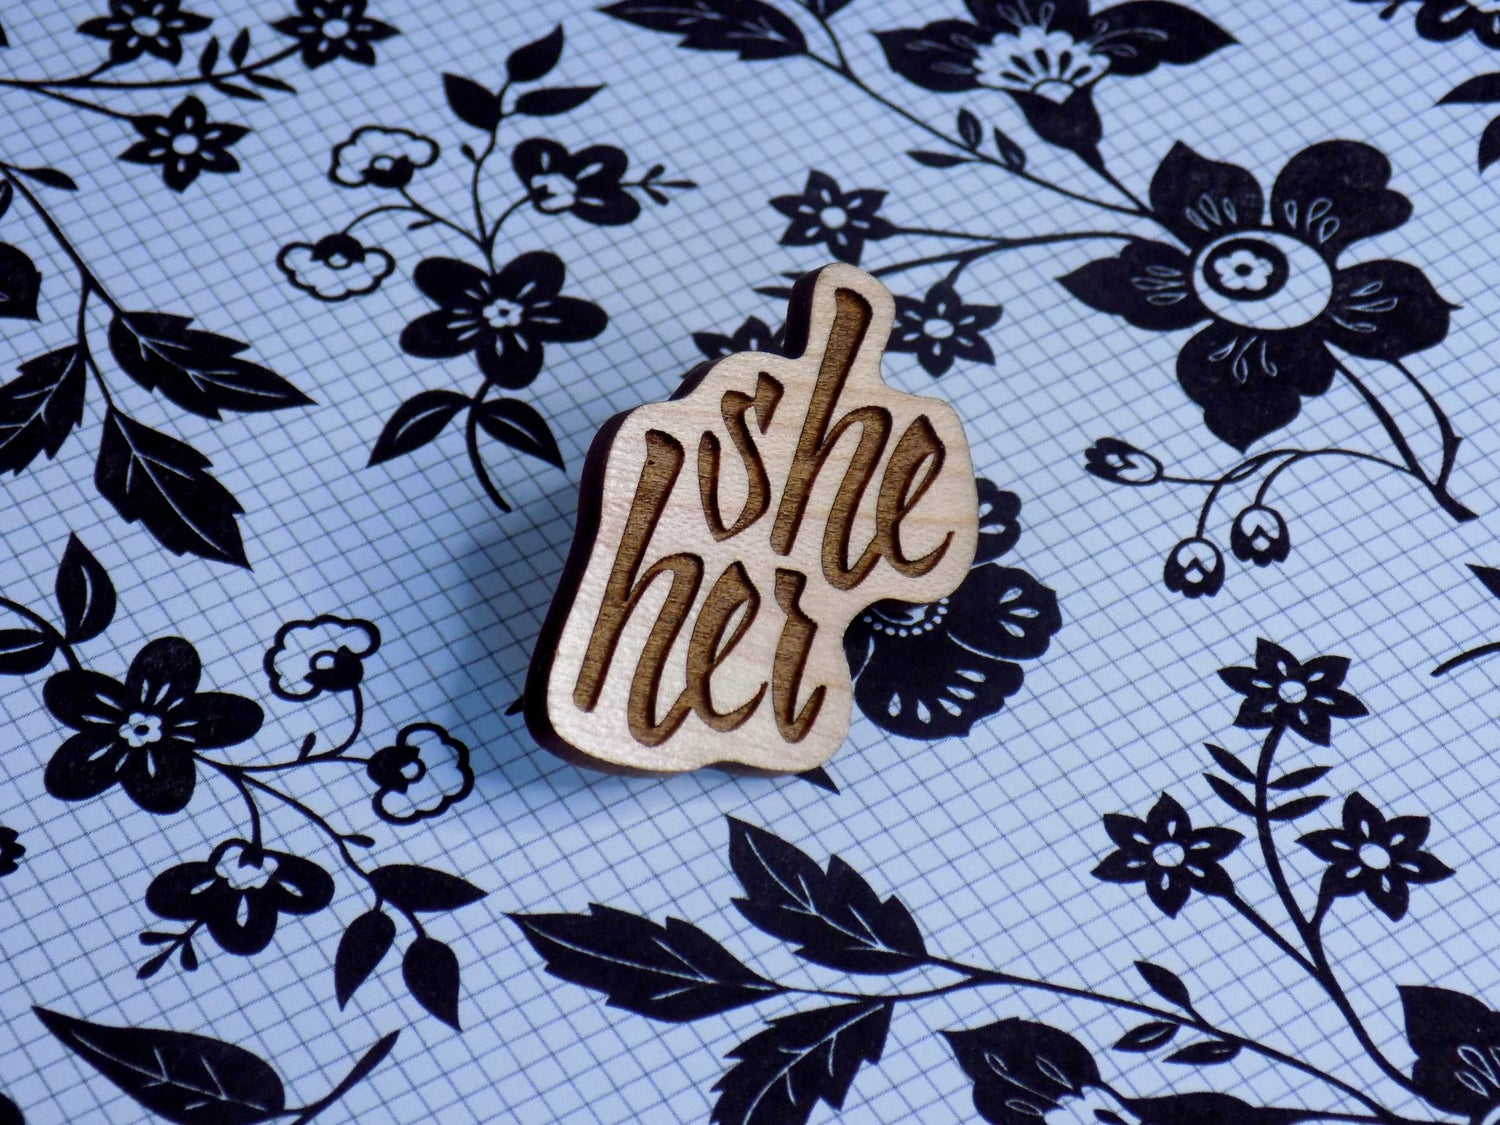 Maple Hardwood Pronoun Pin - She/Her